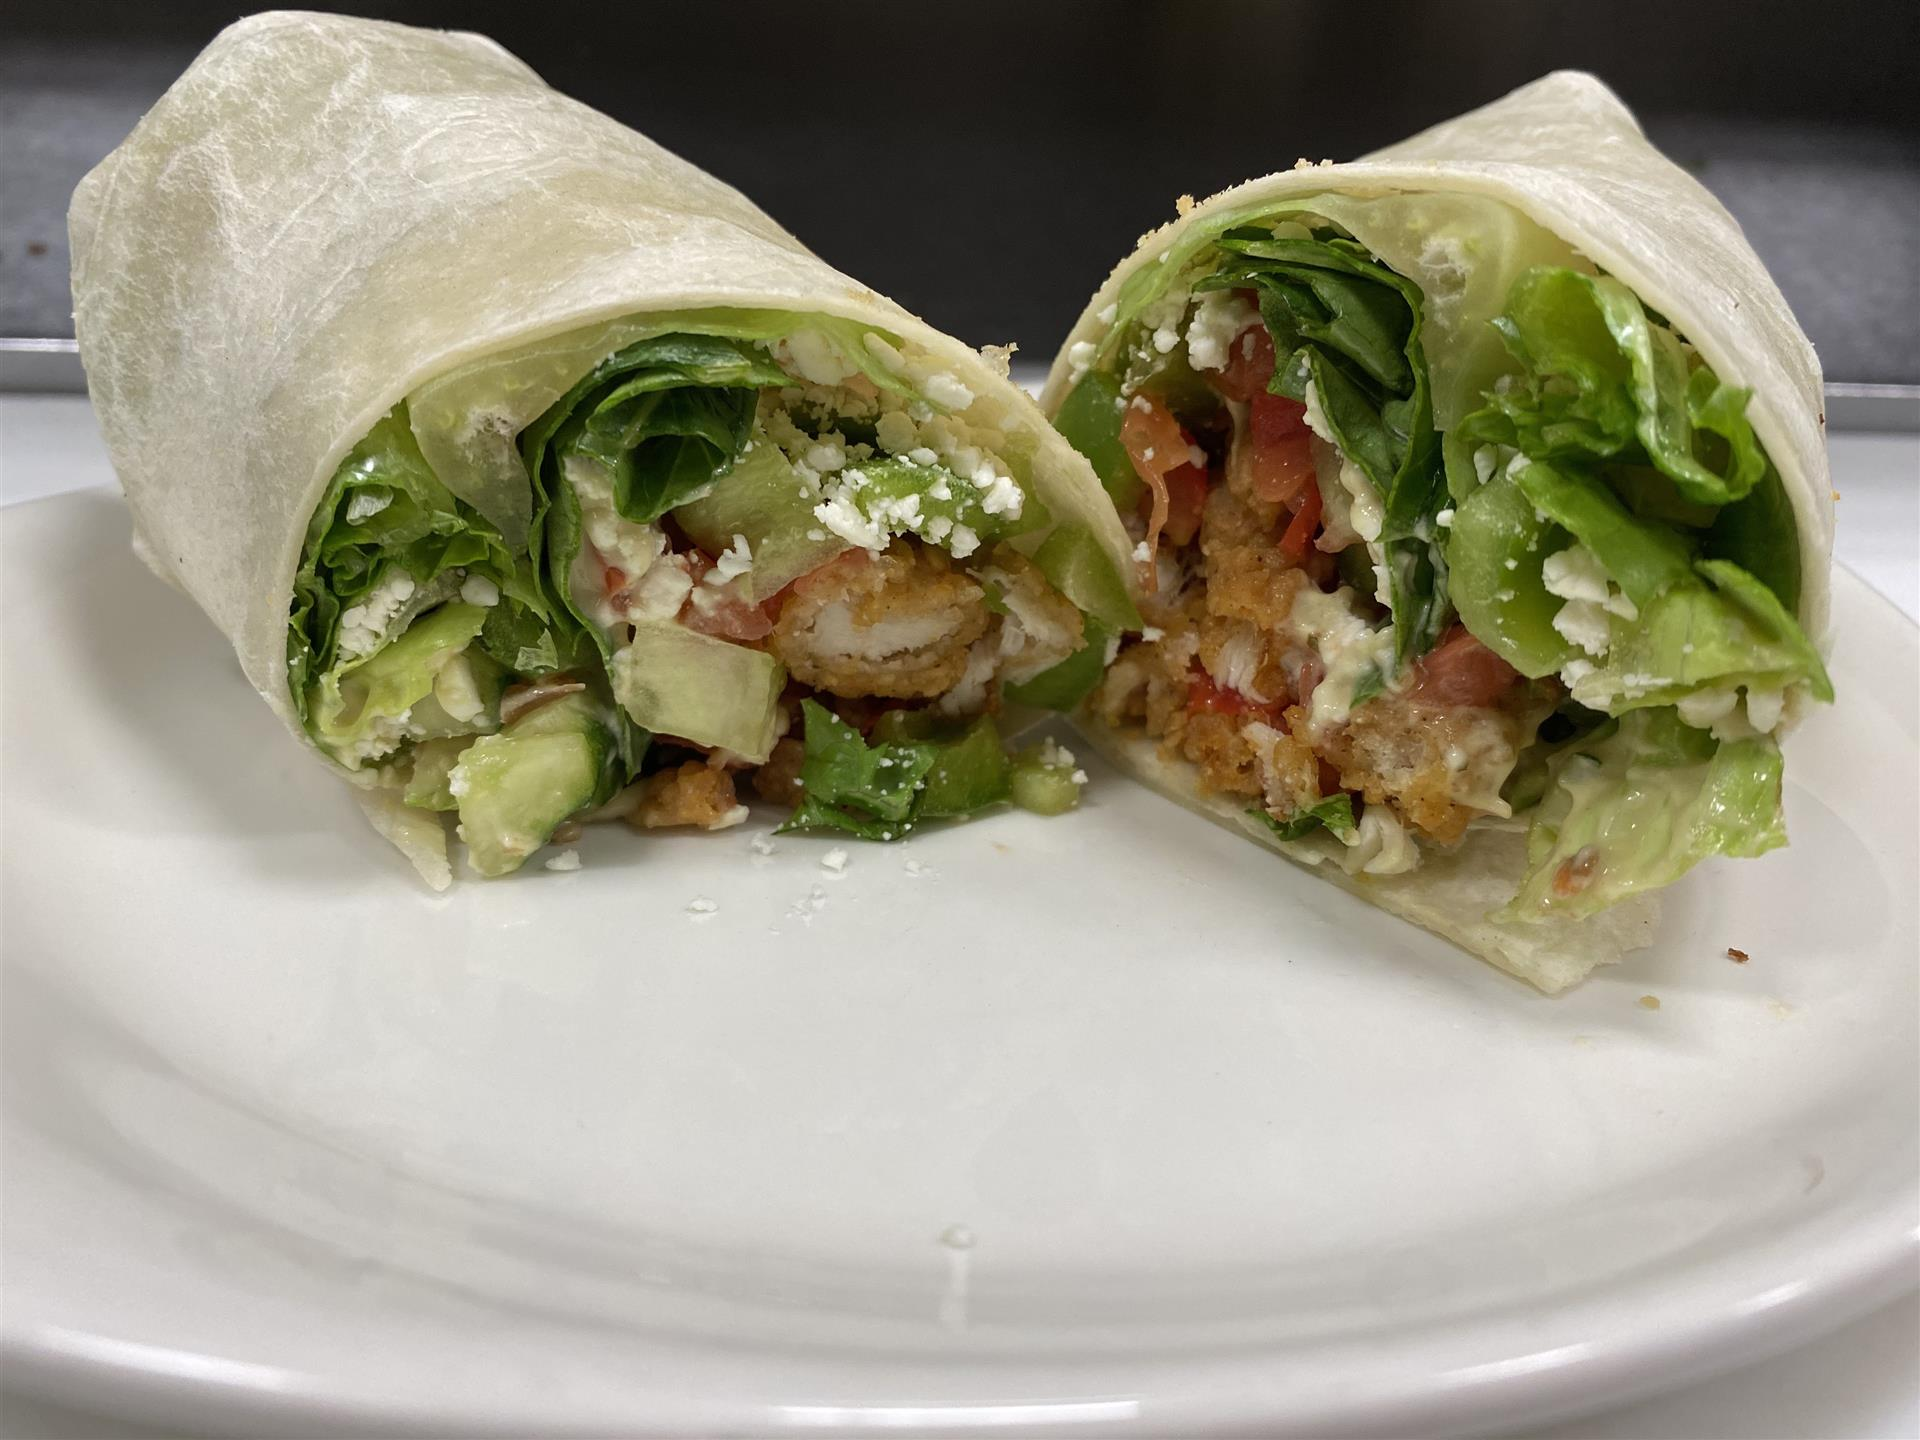 crispy chicken wrap with ranch dressing, tomatoes, lettuce and cheese